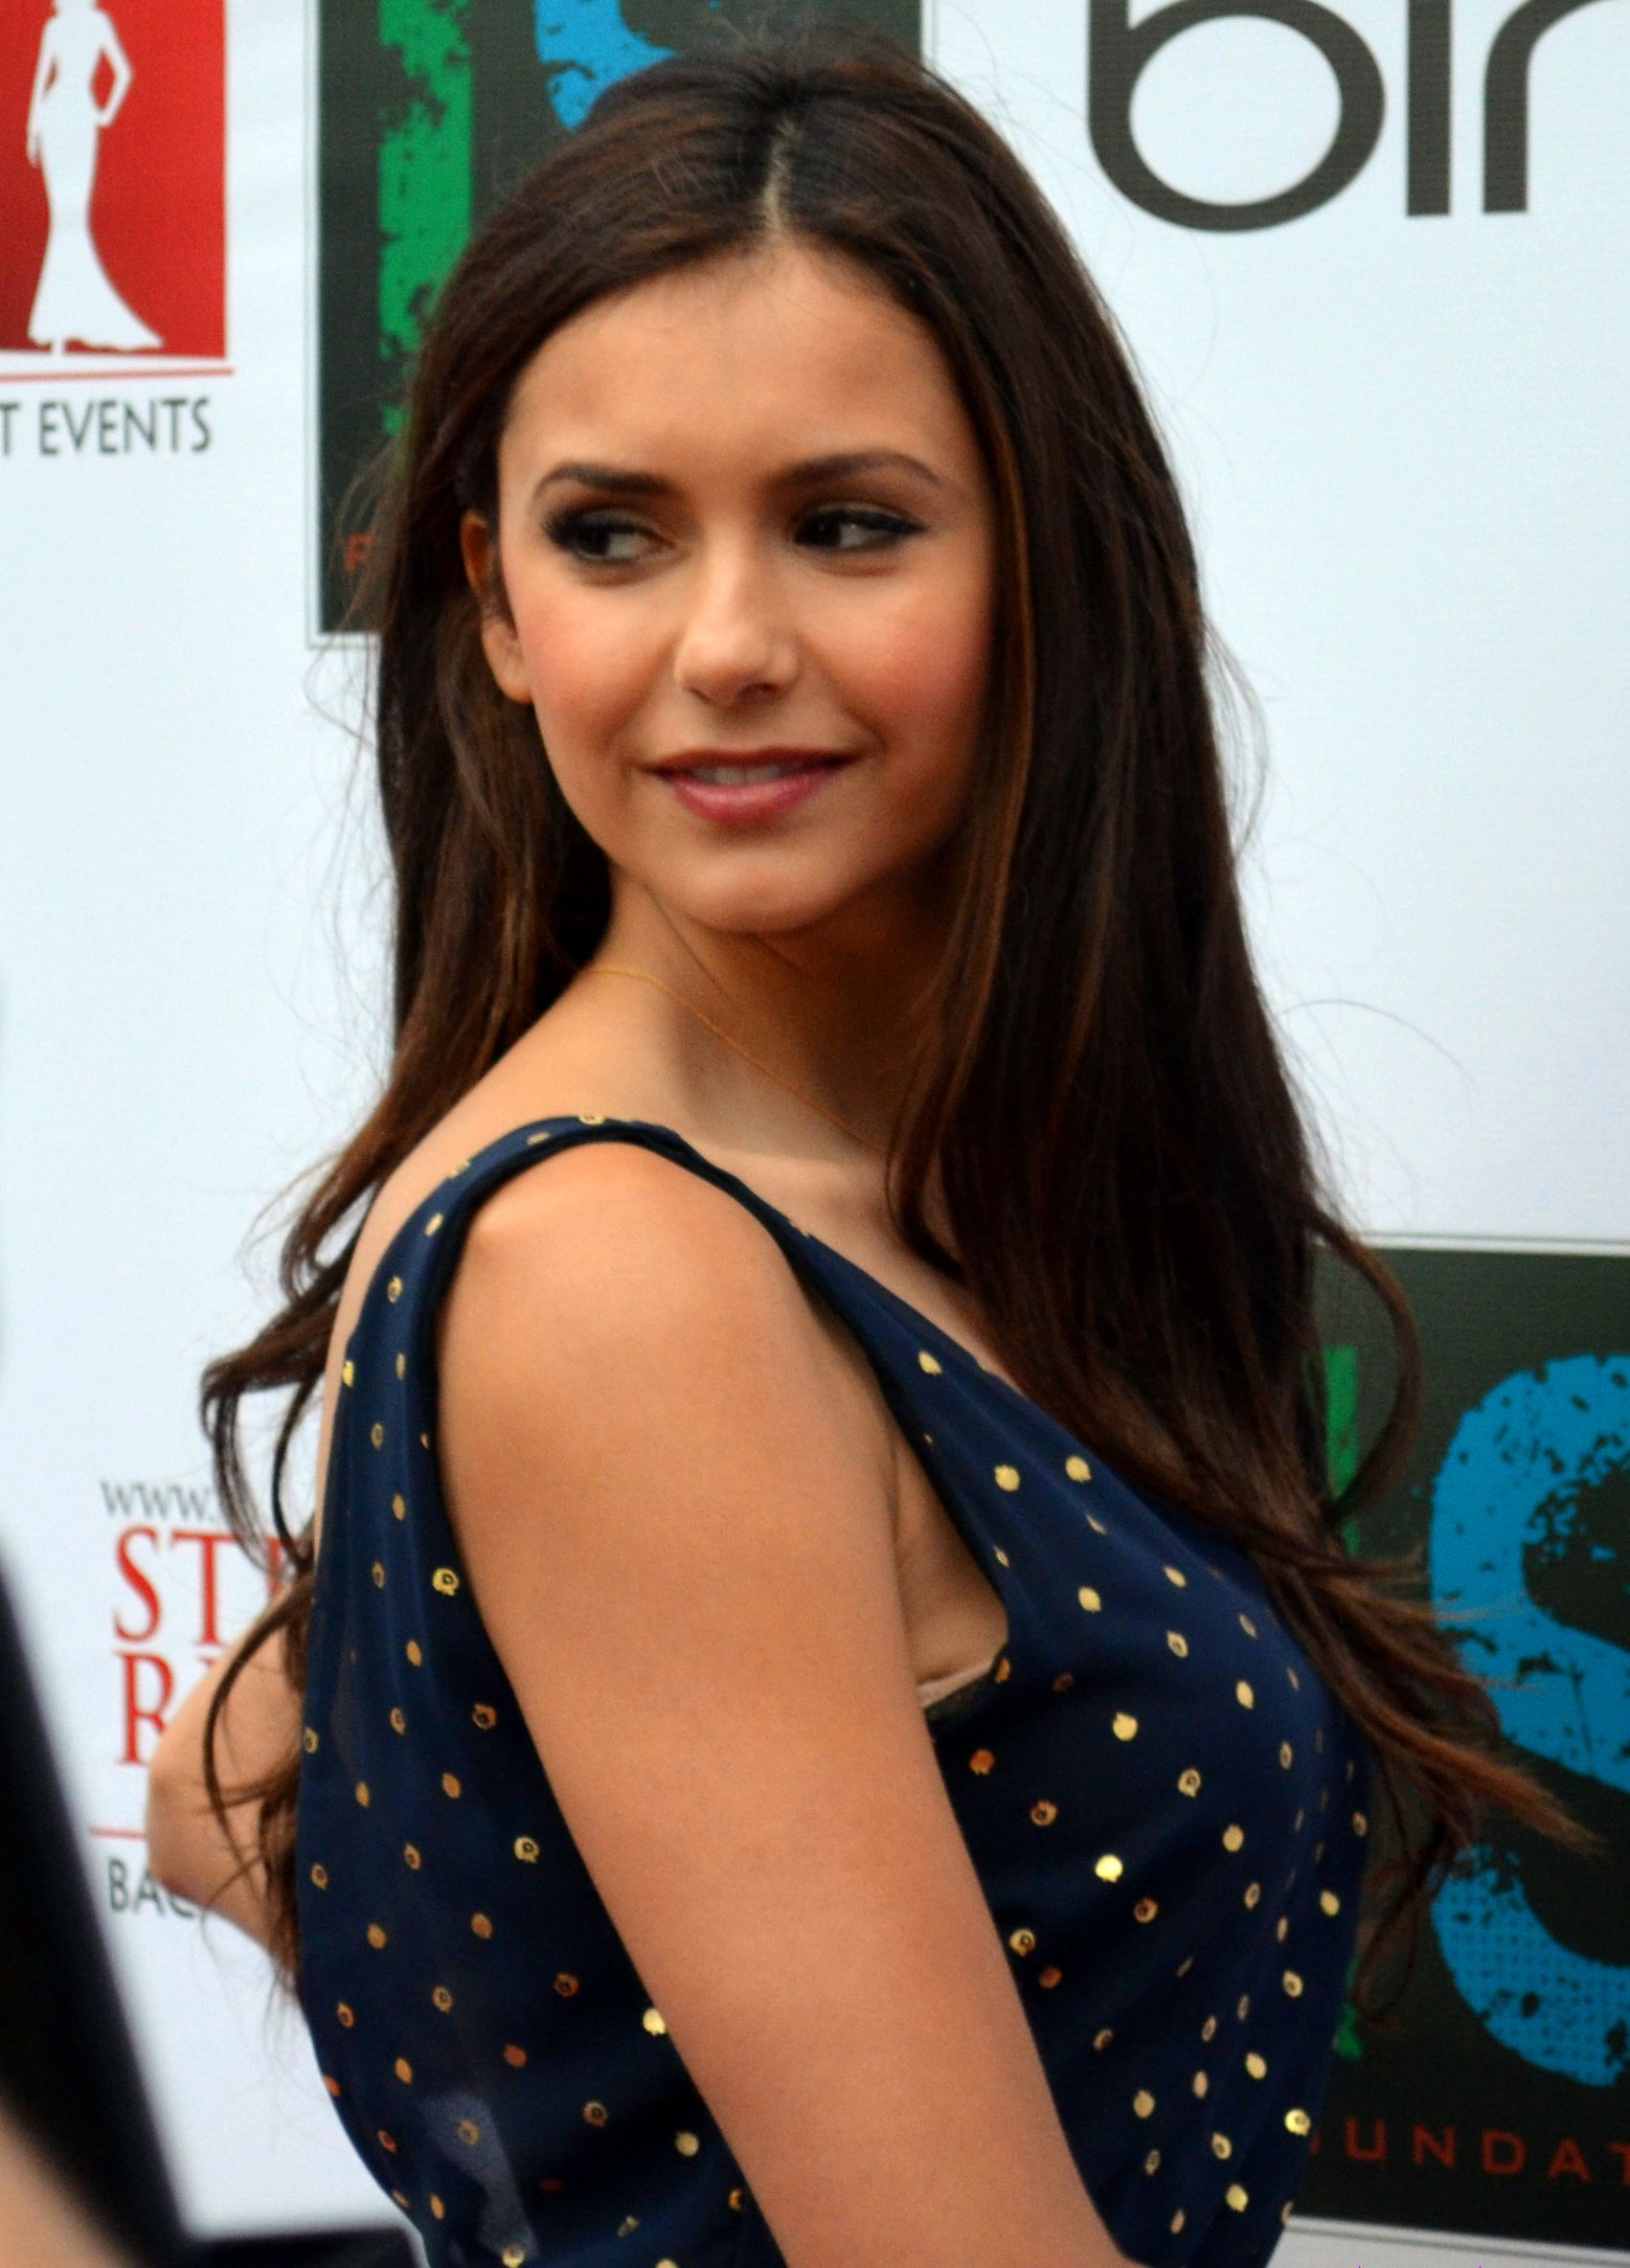 Nina Dobrev looks breath-taking in this photo as she gives a shy smile.